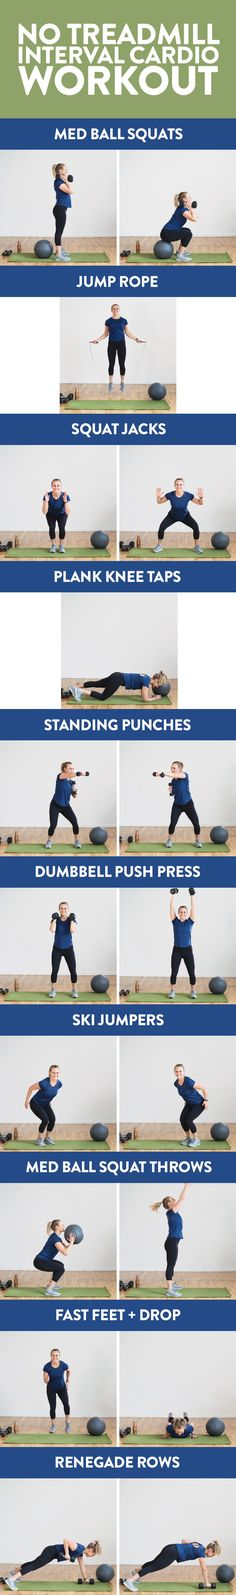 Get in all of your steps with his challenging, no-treadmill interval cardio workout. You can do this cardio workout at home or at the gym with just a set of dumbbells and a medicine ball!